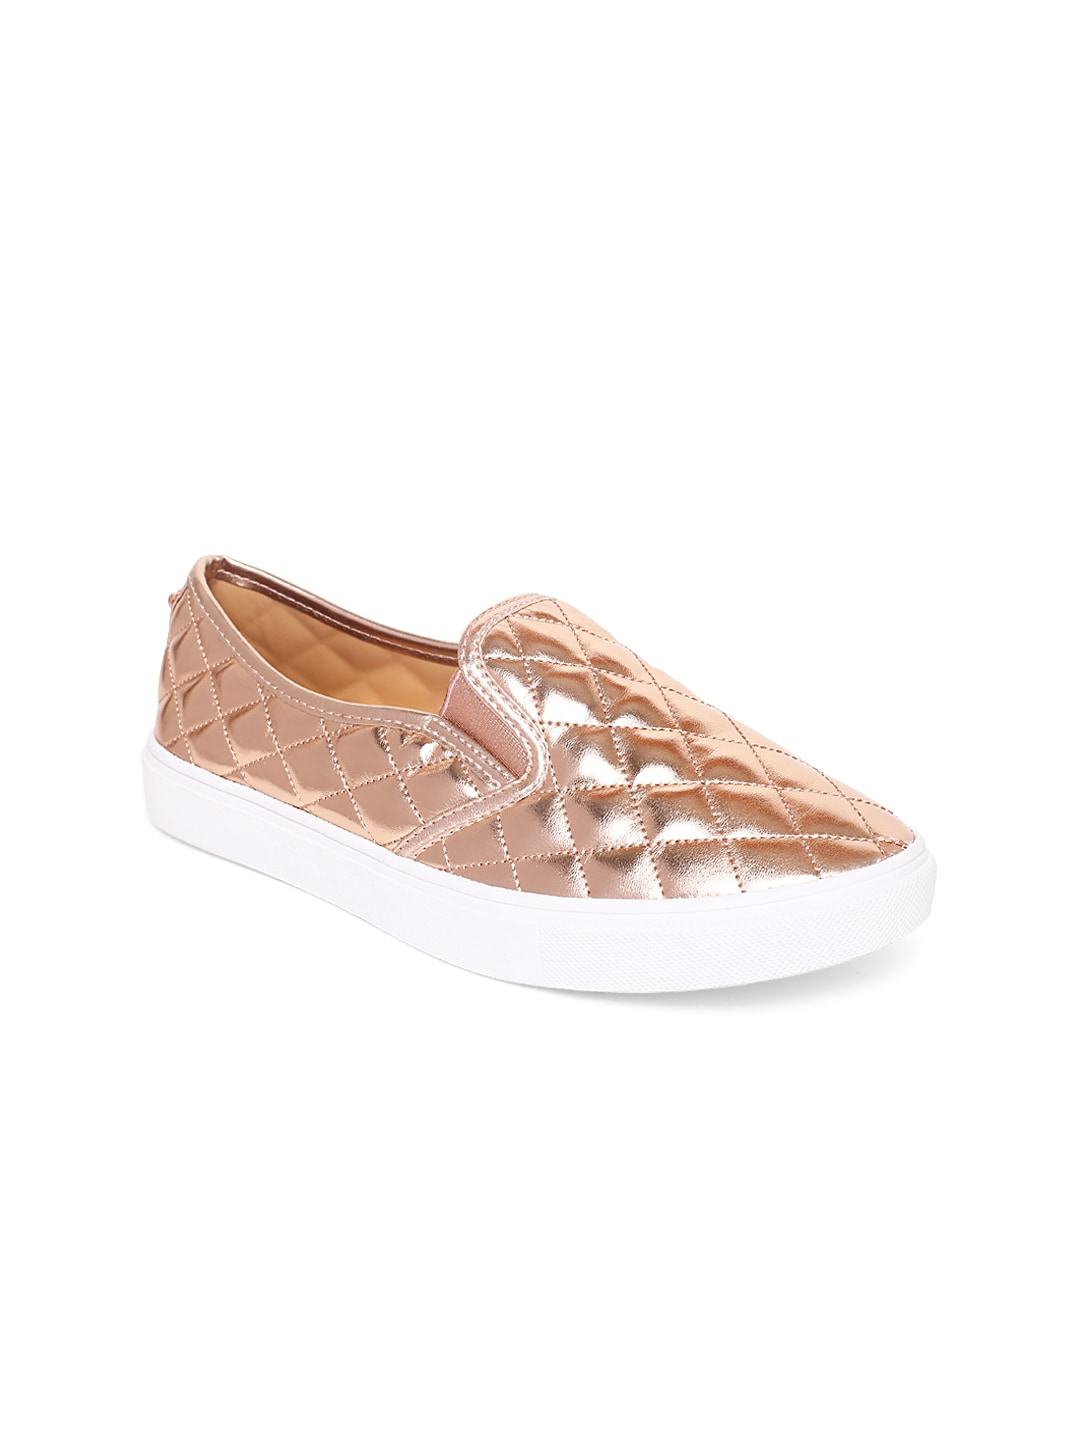 f72b9dca123 Buy Steve Madden Women Gold Toned ECENTRCQ Slip On Sneakers - Casual ...